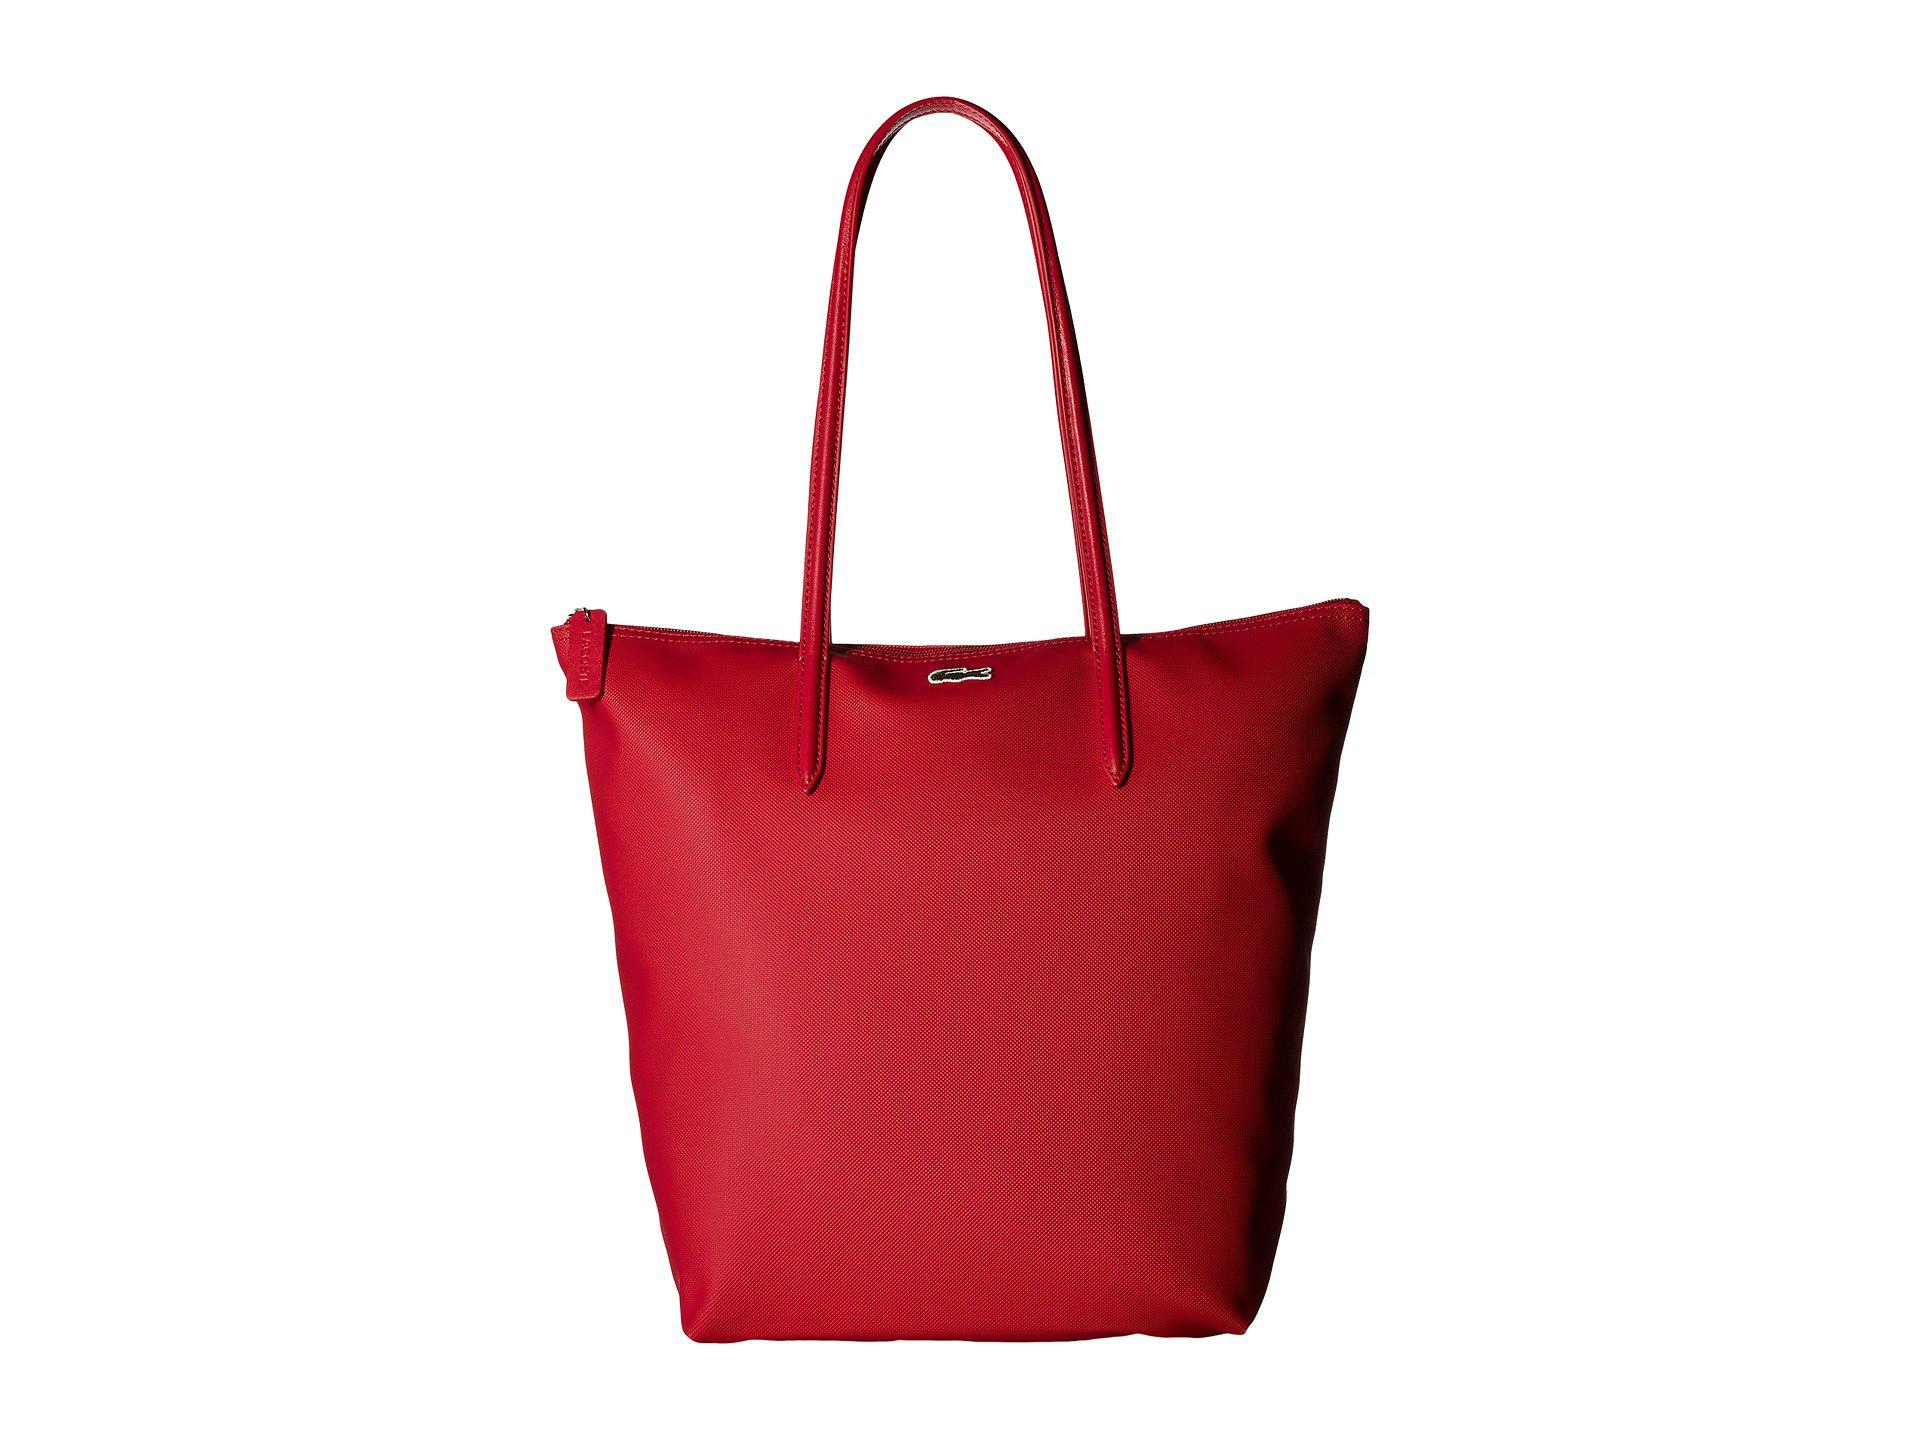 8a2bcd47faaa Lyst - Lacoste L.12.12 Vertical Tote Bag in Red - Save 31%